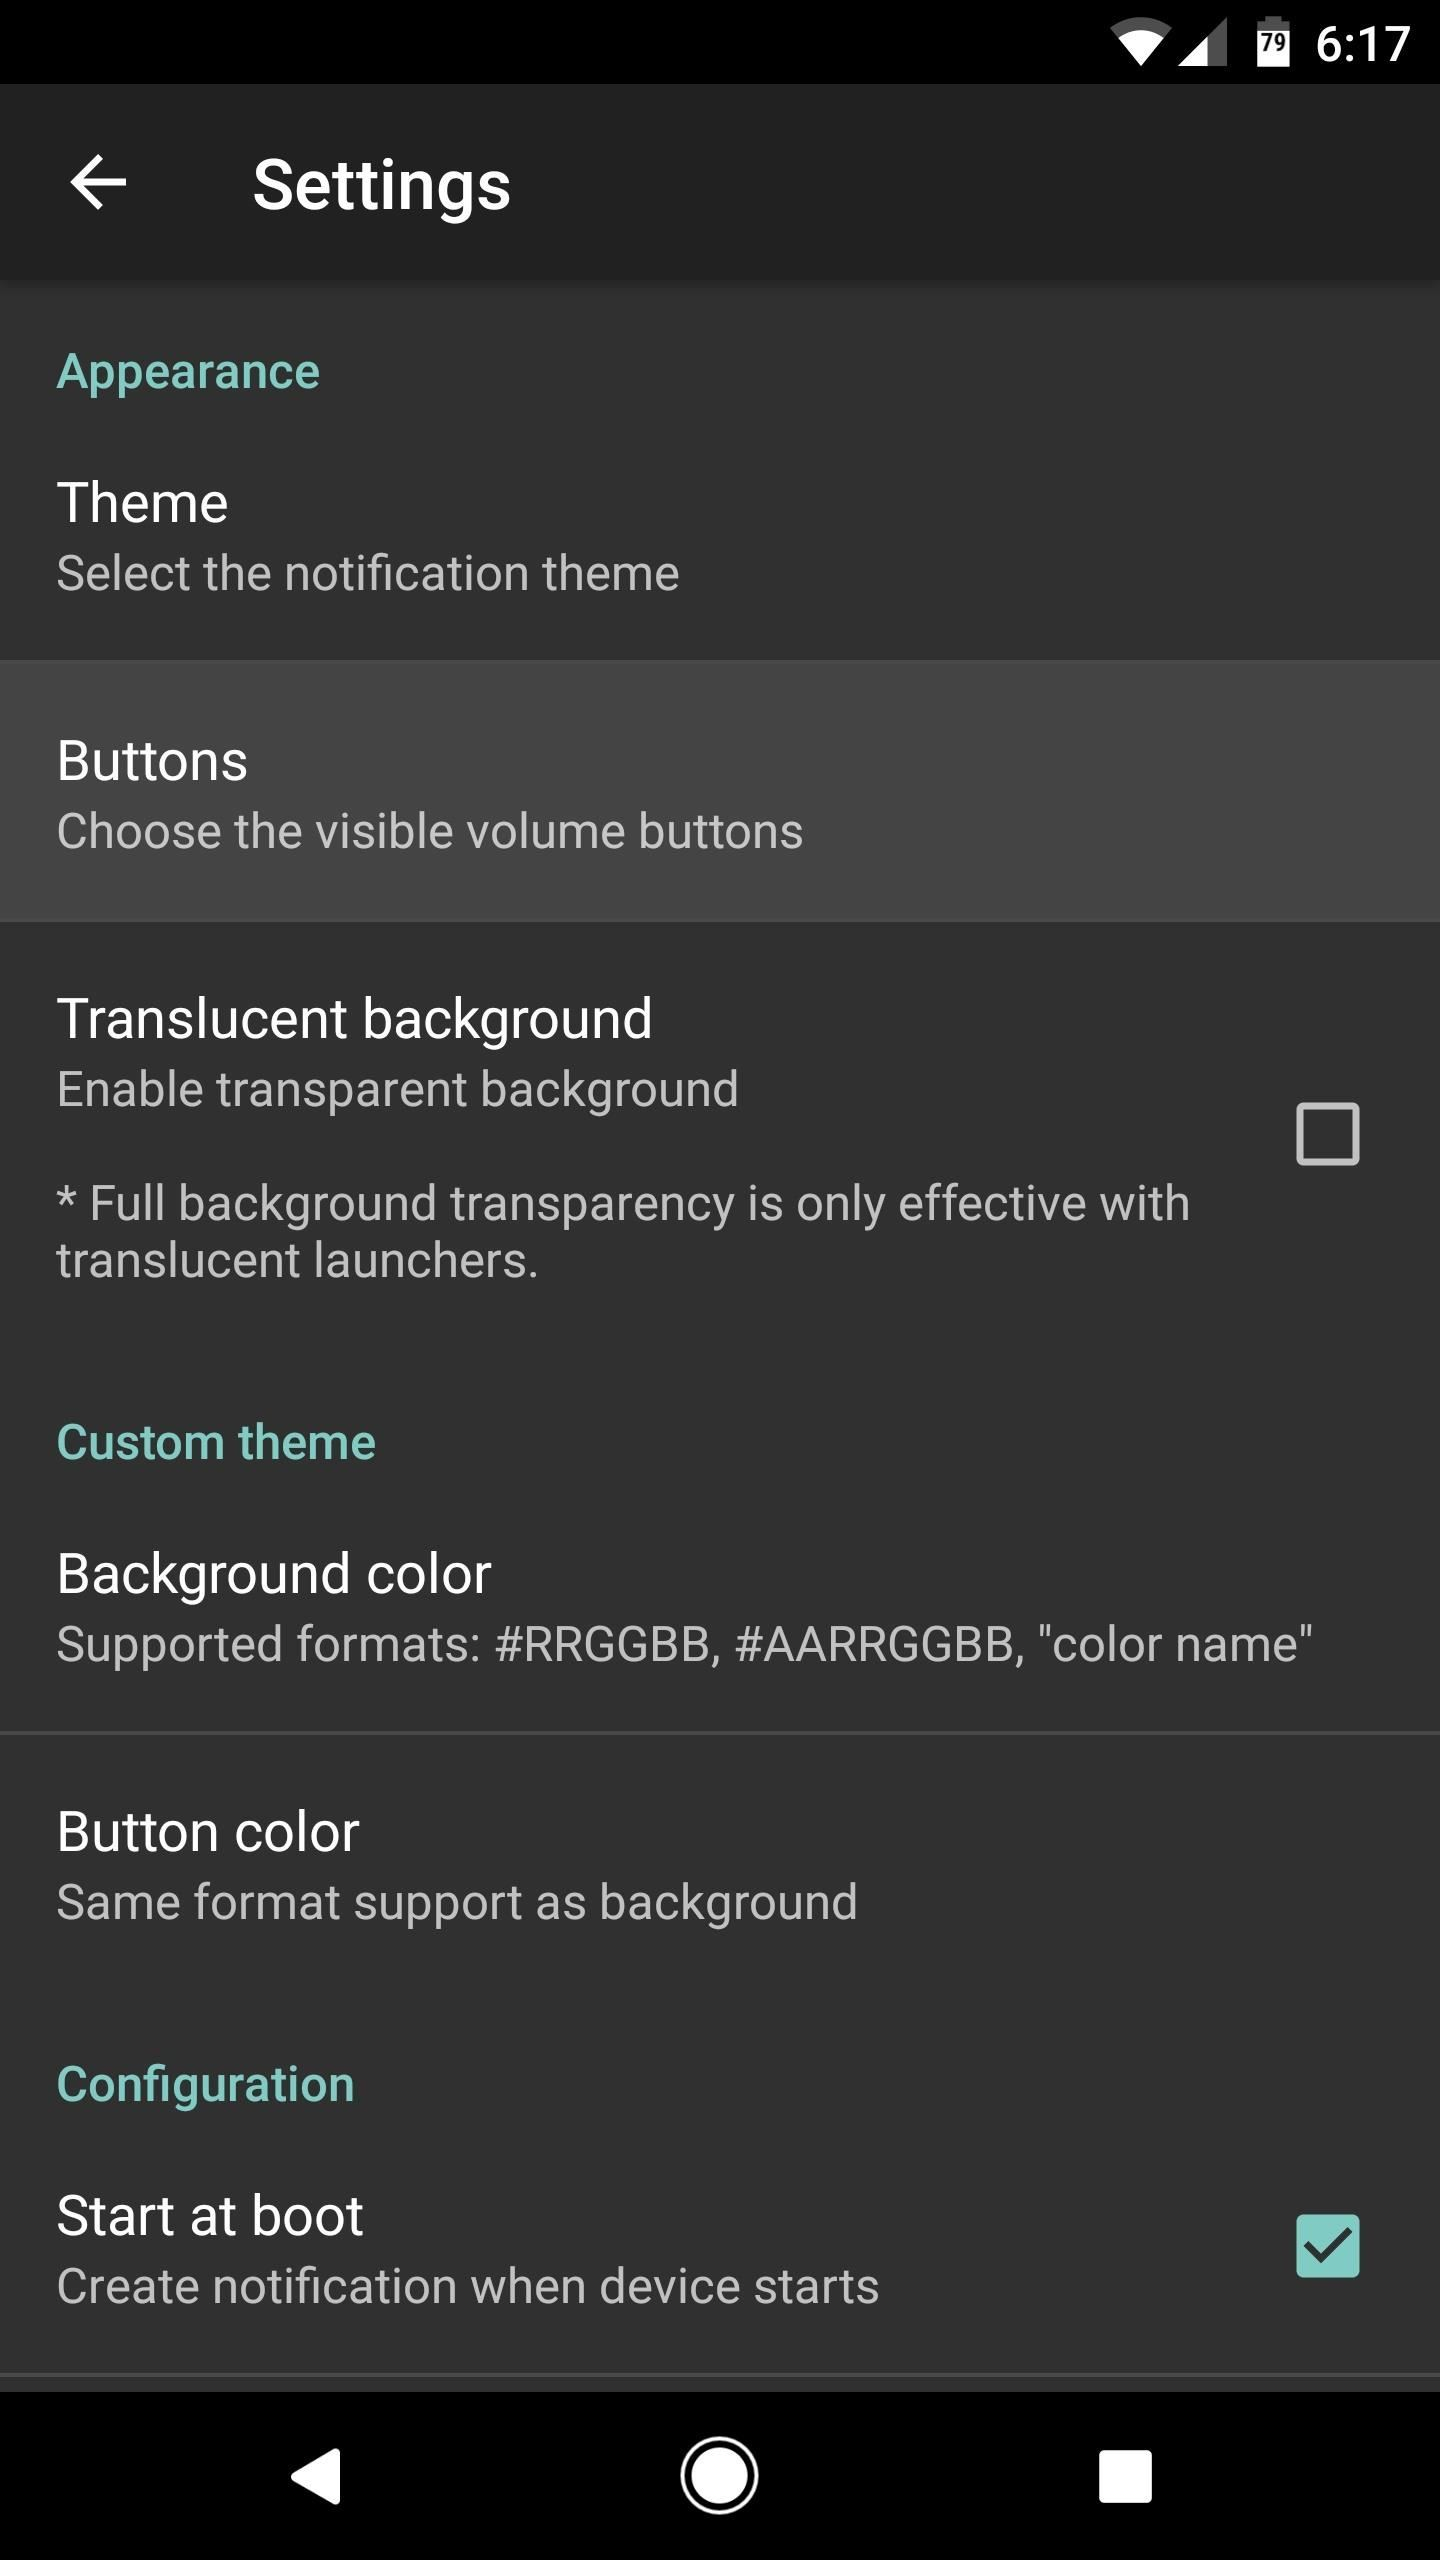 Control Media, Ringtone & Call Volume from Your Notification